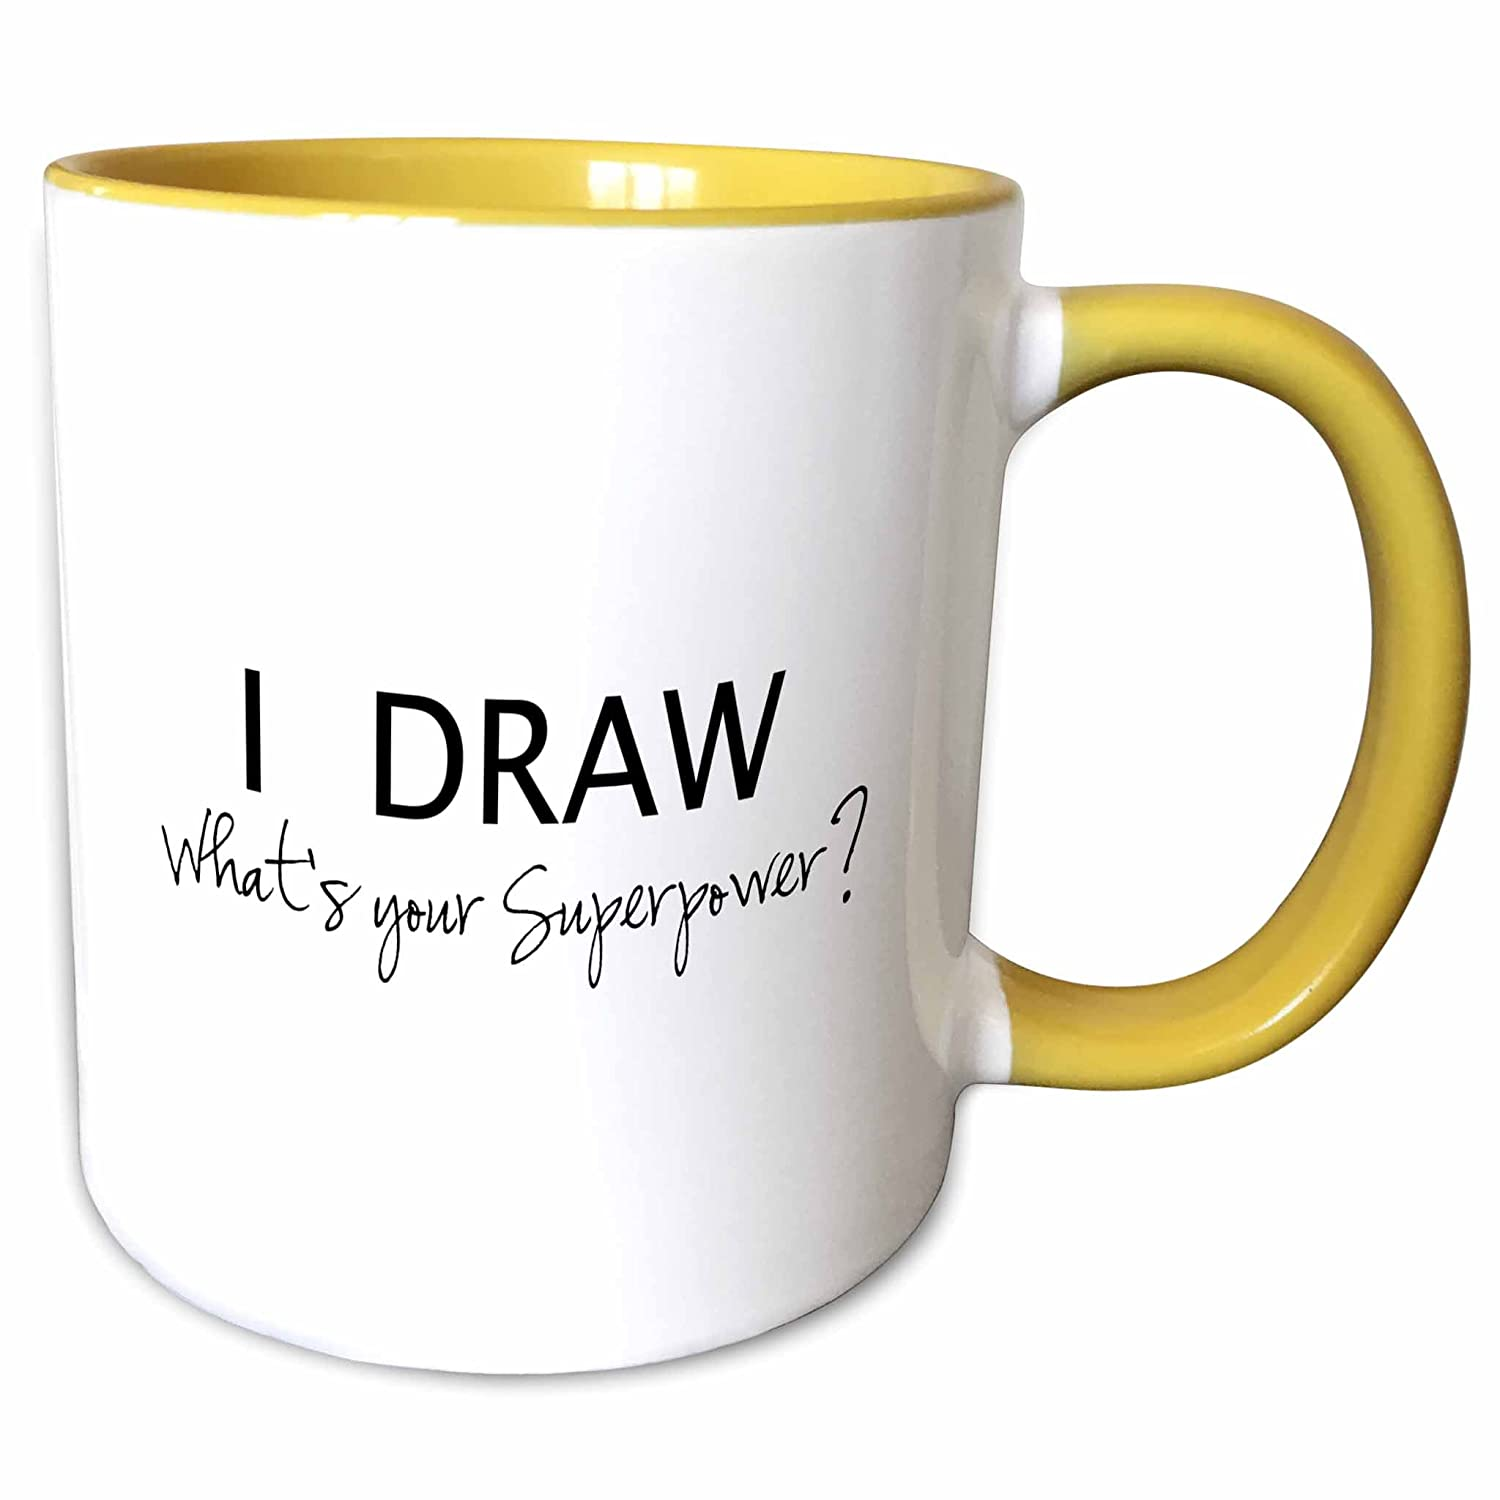 (440ml) - 3dRose mug_194453_2 I Draw What's Your Superpower Fun Gift for Arty Artists Art Love Ceramic Mug, 440ml, White B00NVVU8I4 15 oz  15 oz